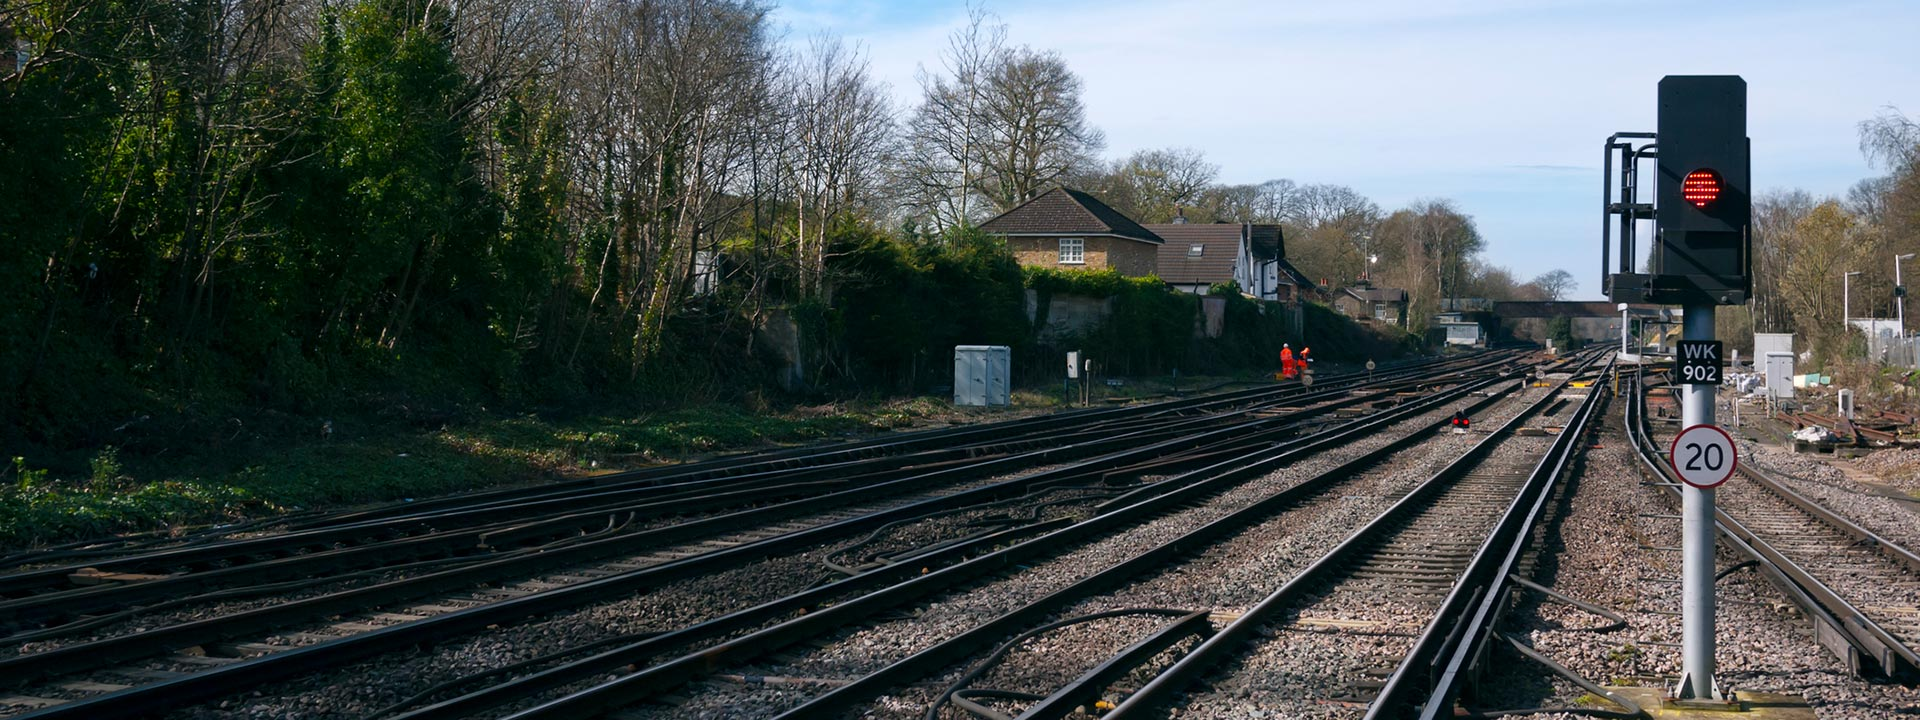 Ricardo investigates UK progress in train protection and safety technology